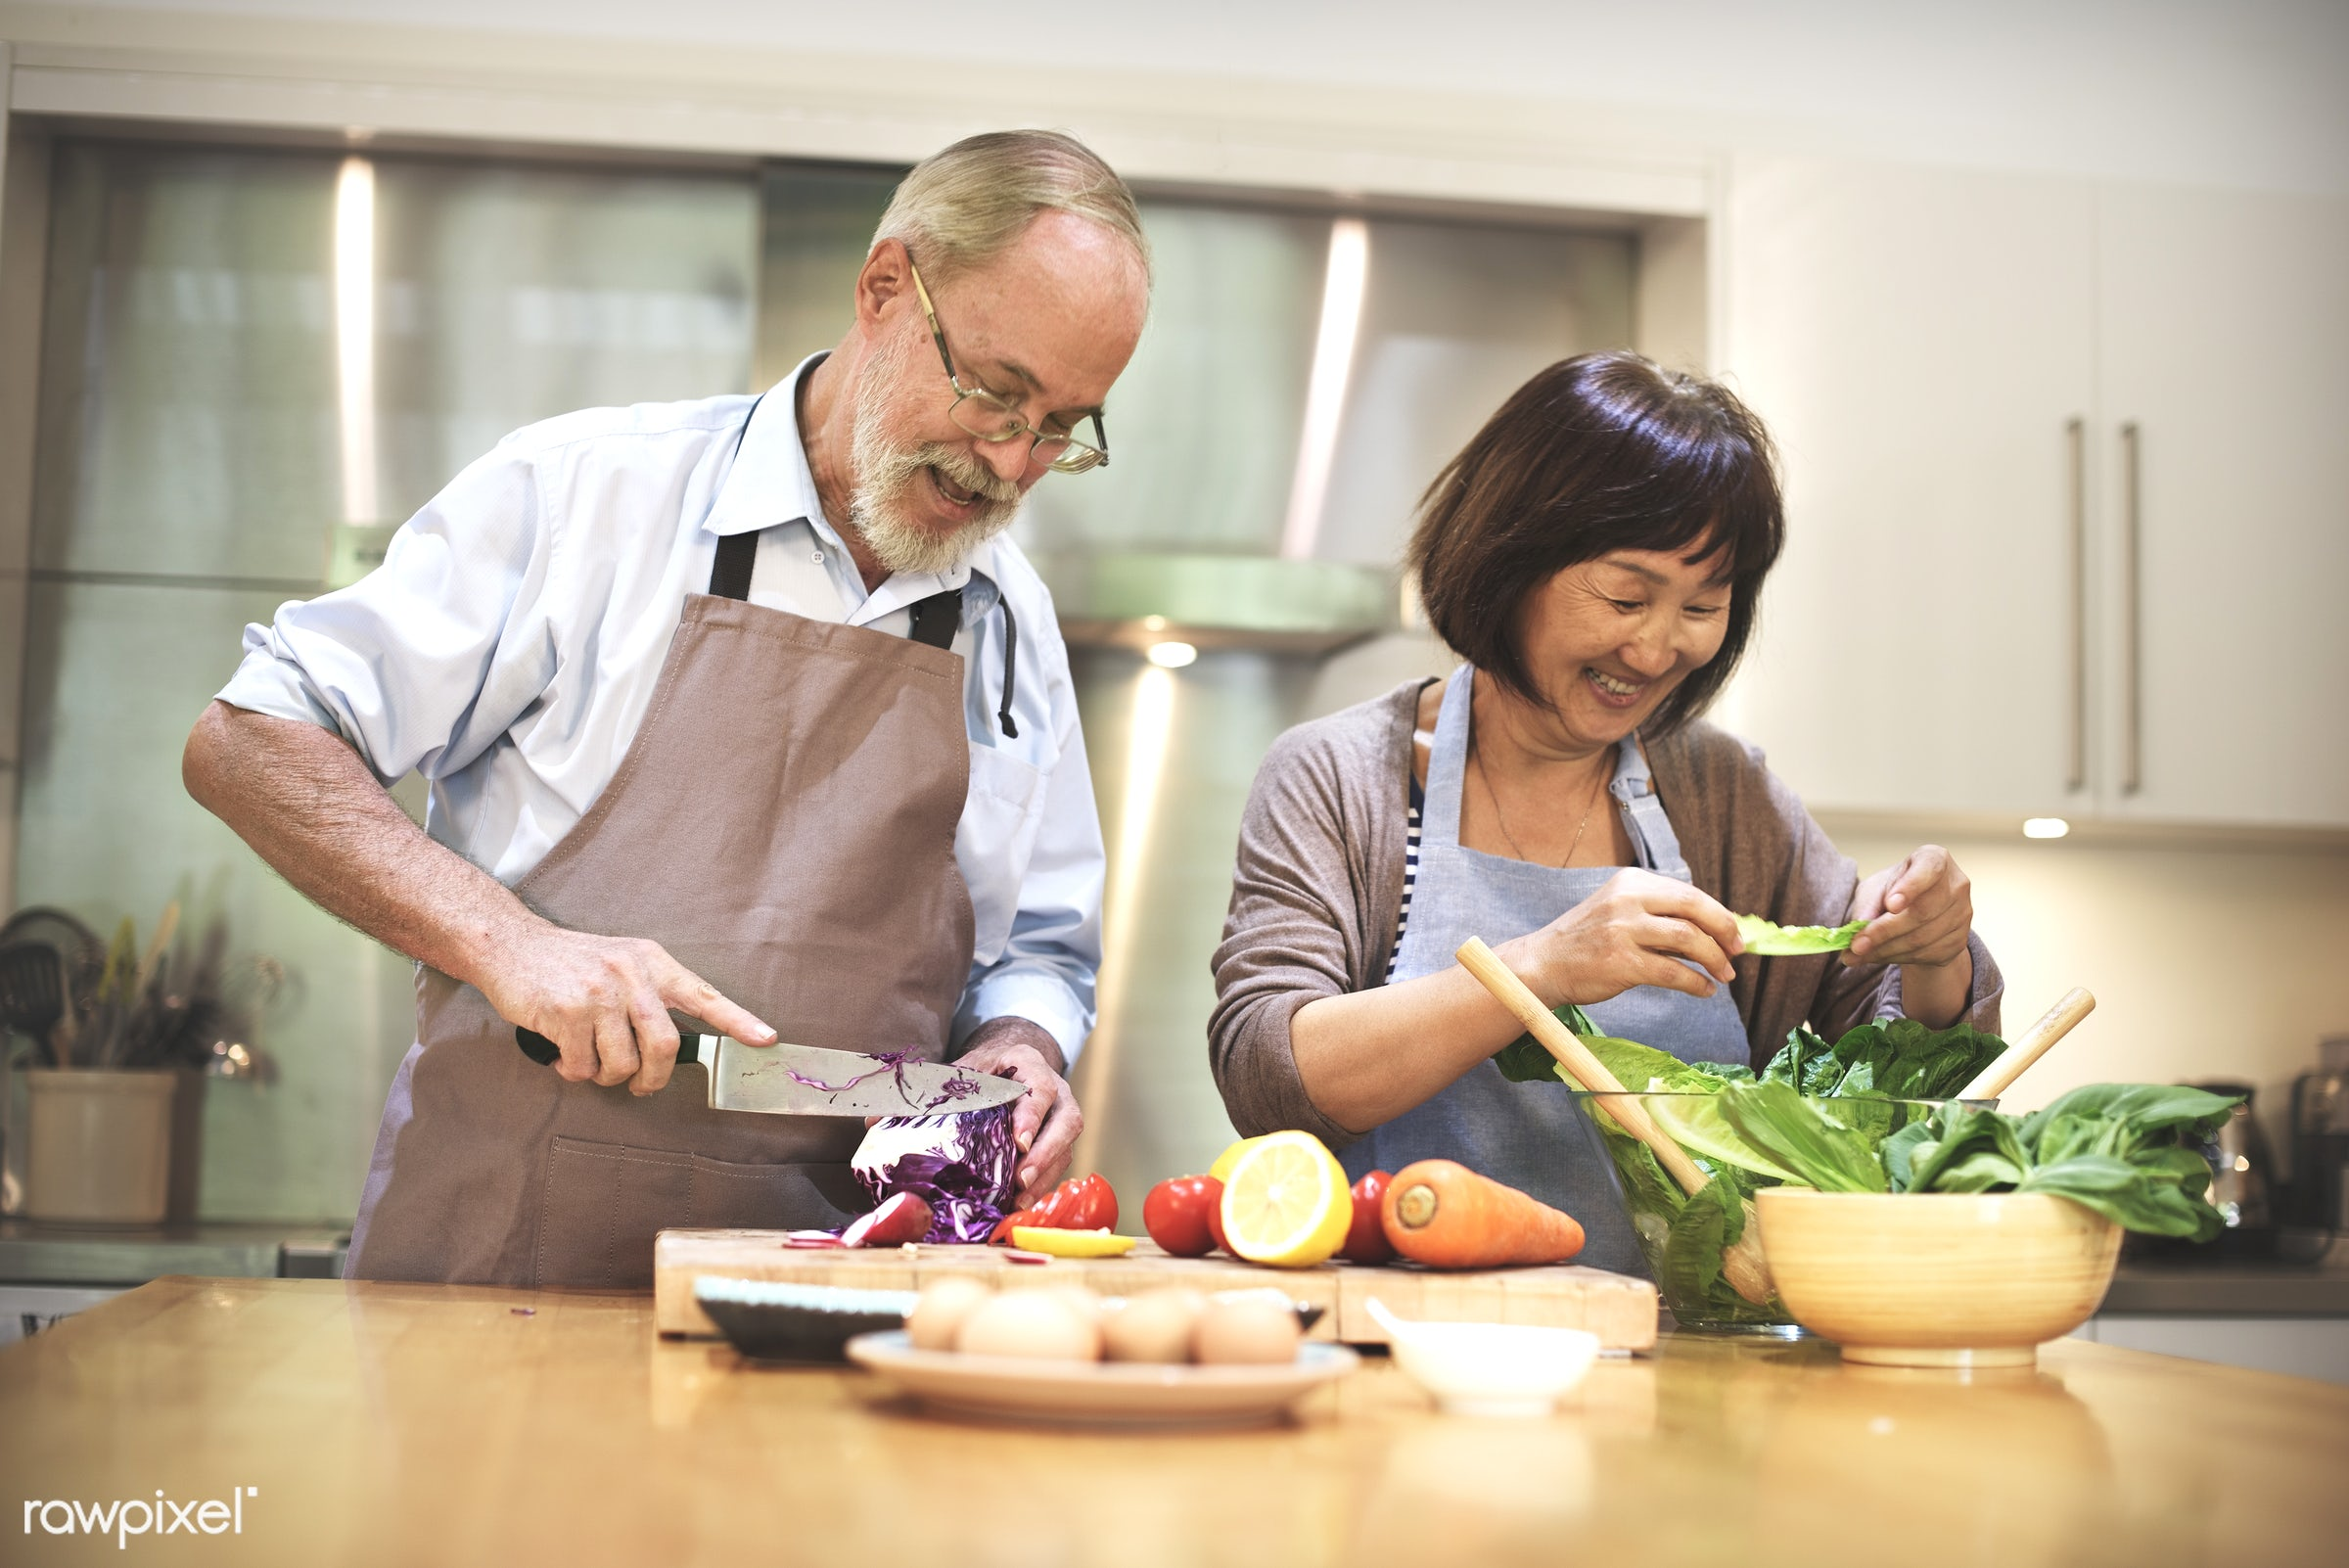 activity, apron, bonding, breakfast, casual, cheerful, chef, chopping block, cookery, cookhouse, cooking, couple, cuisine,...